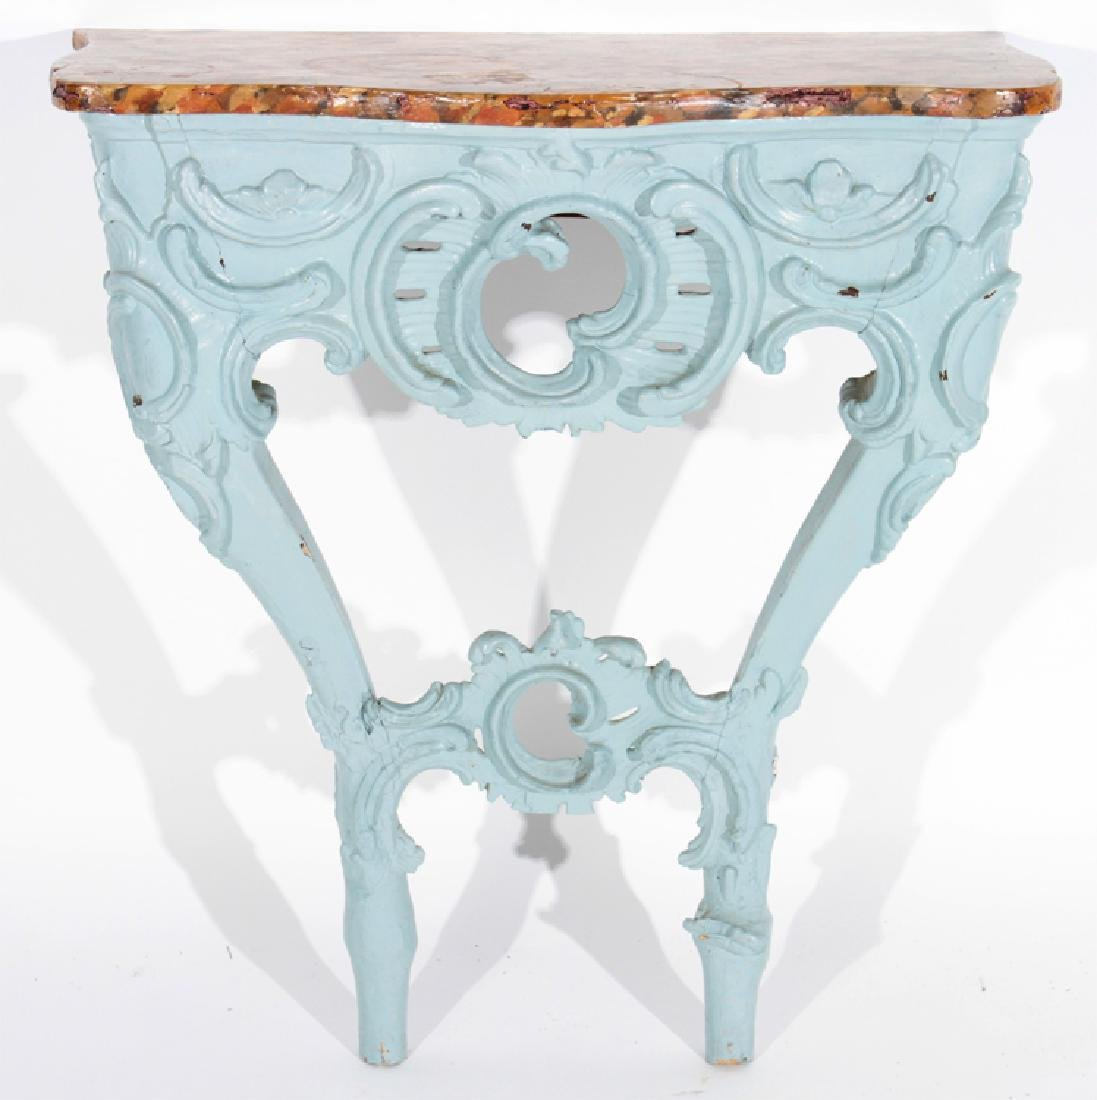 EARLY 18TH CENT. FRENCH CARVED PAINTED CONSOLE